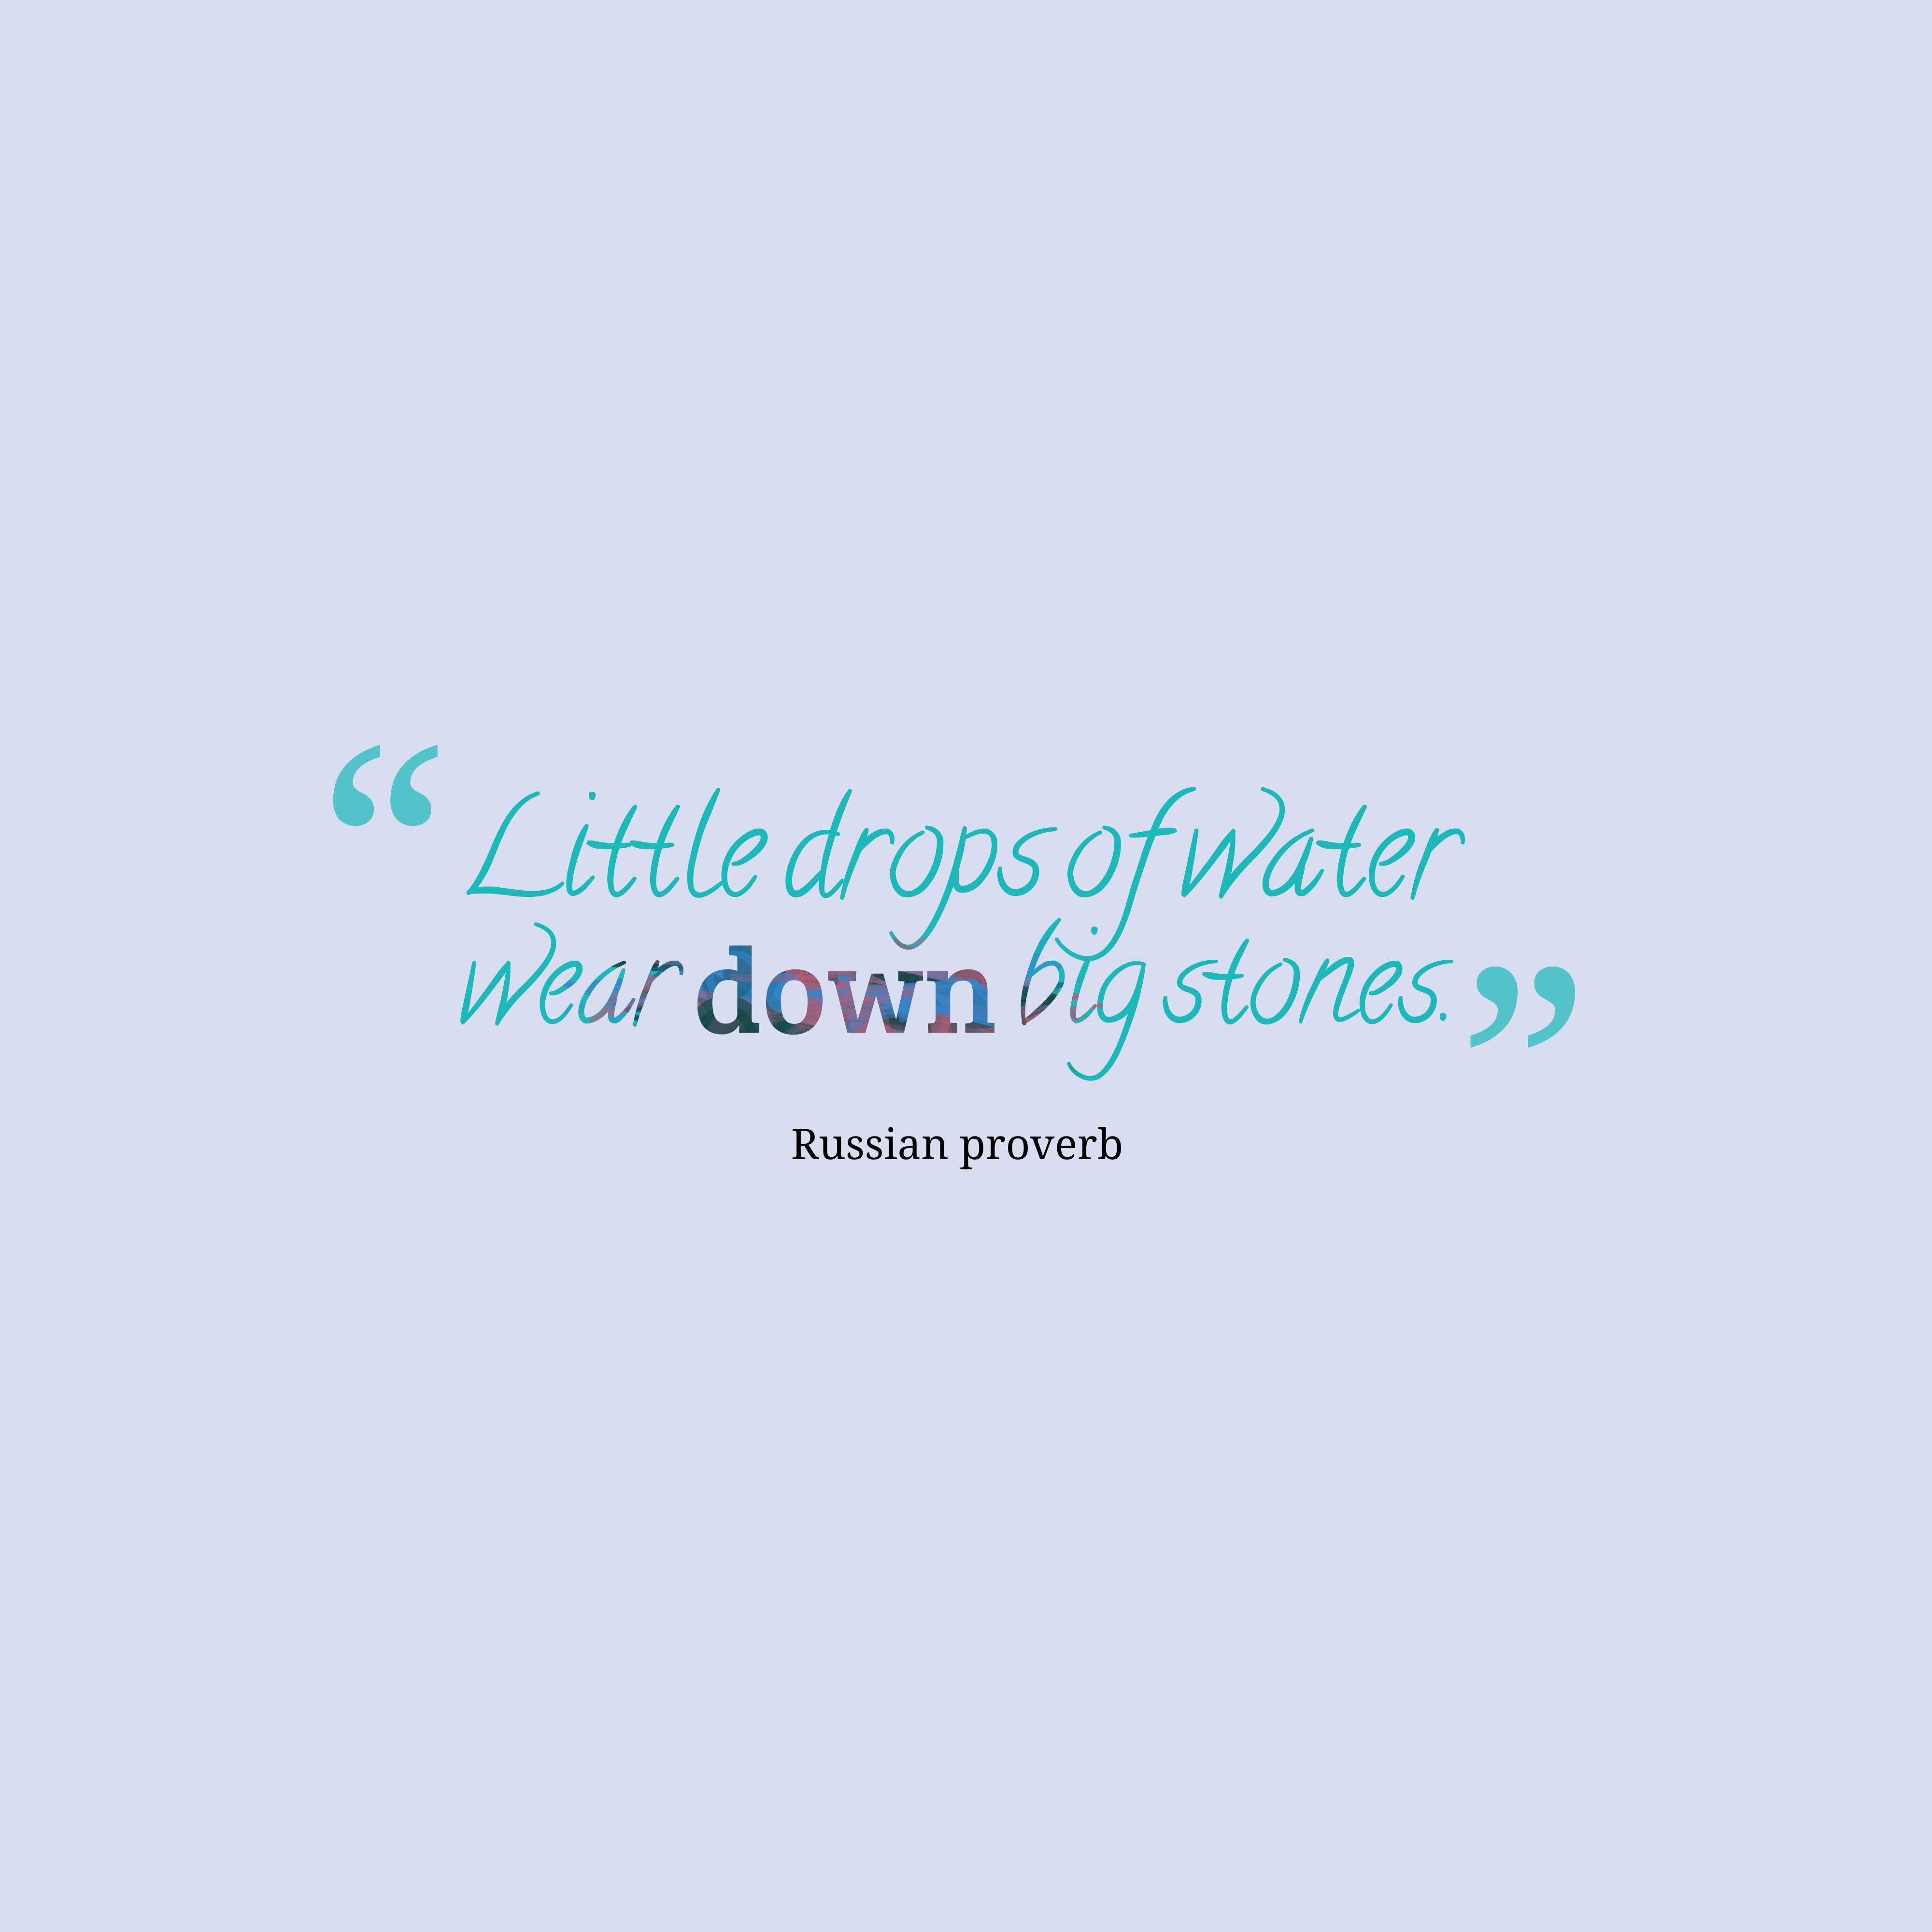 Quotes image of Little drops of water wear down big stones.